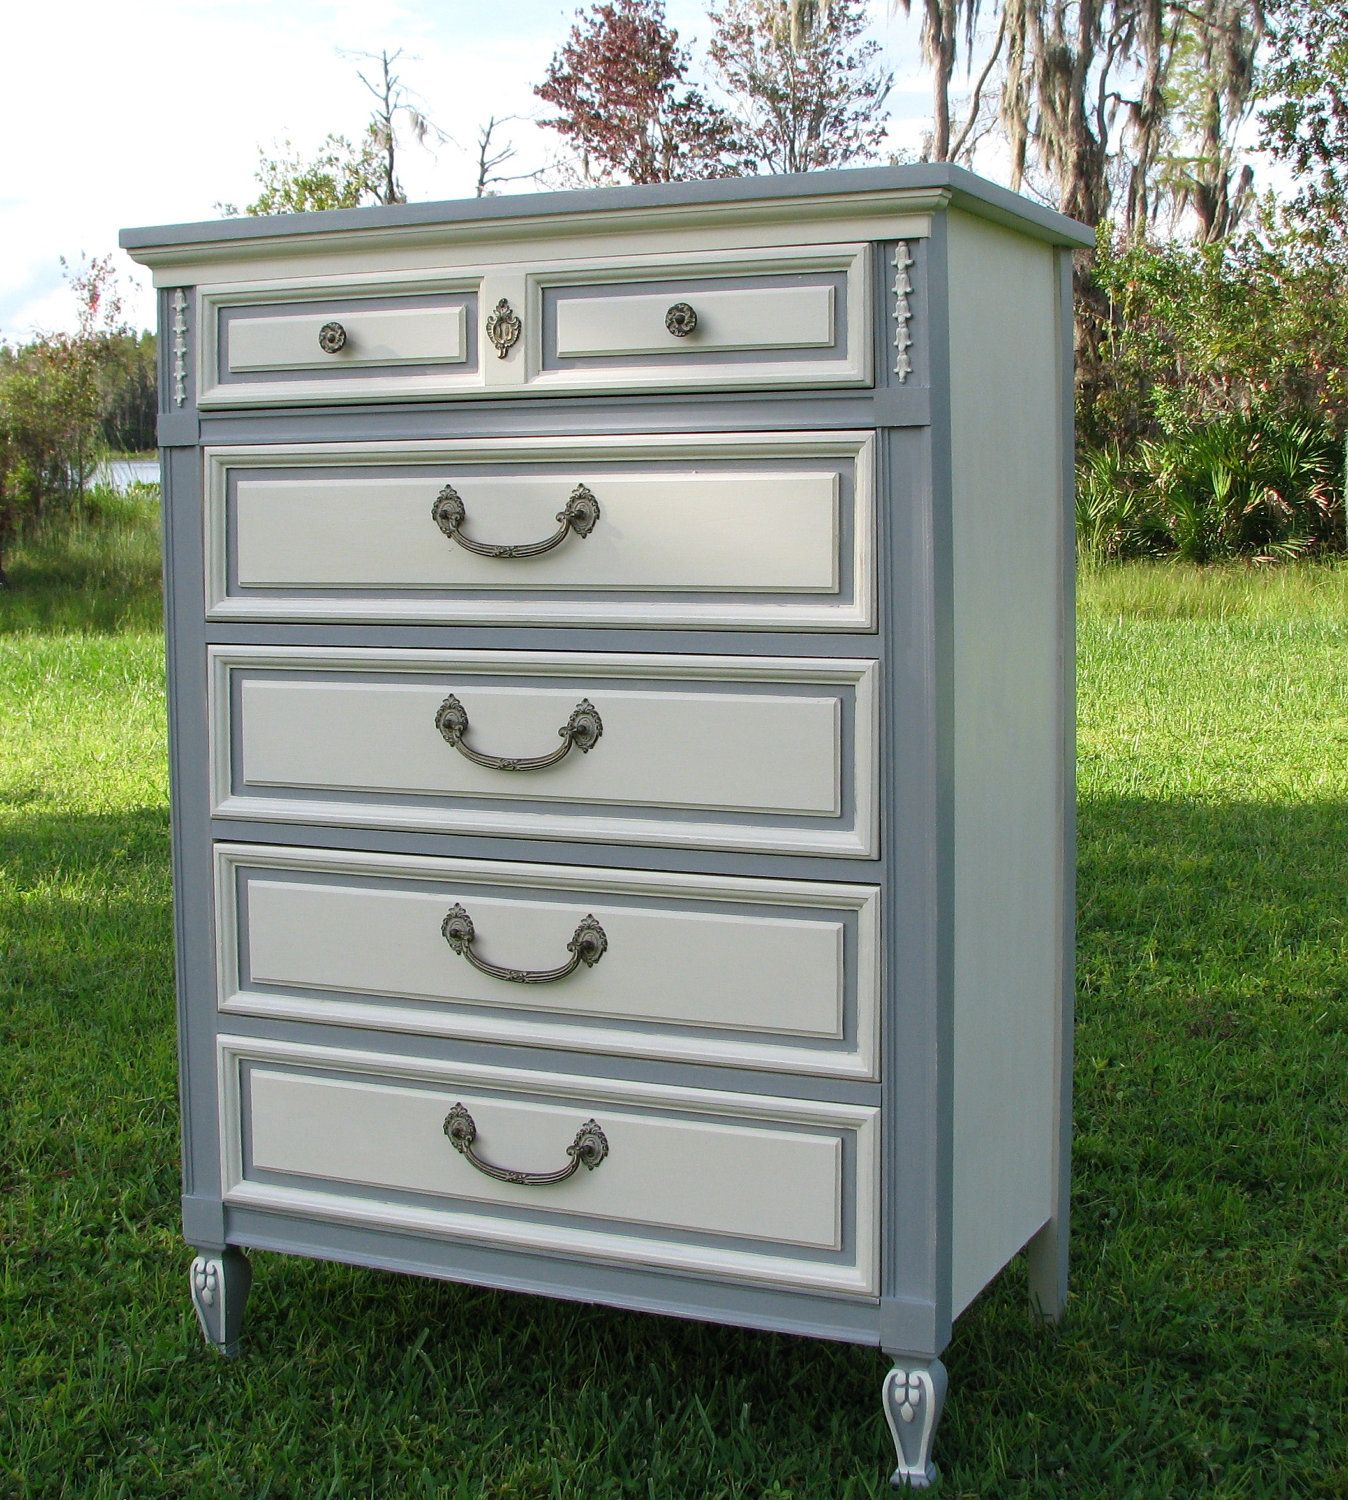 Shabby Chic Dresser Painted Furniture Gray And White French Provincial Style